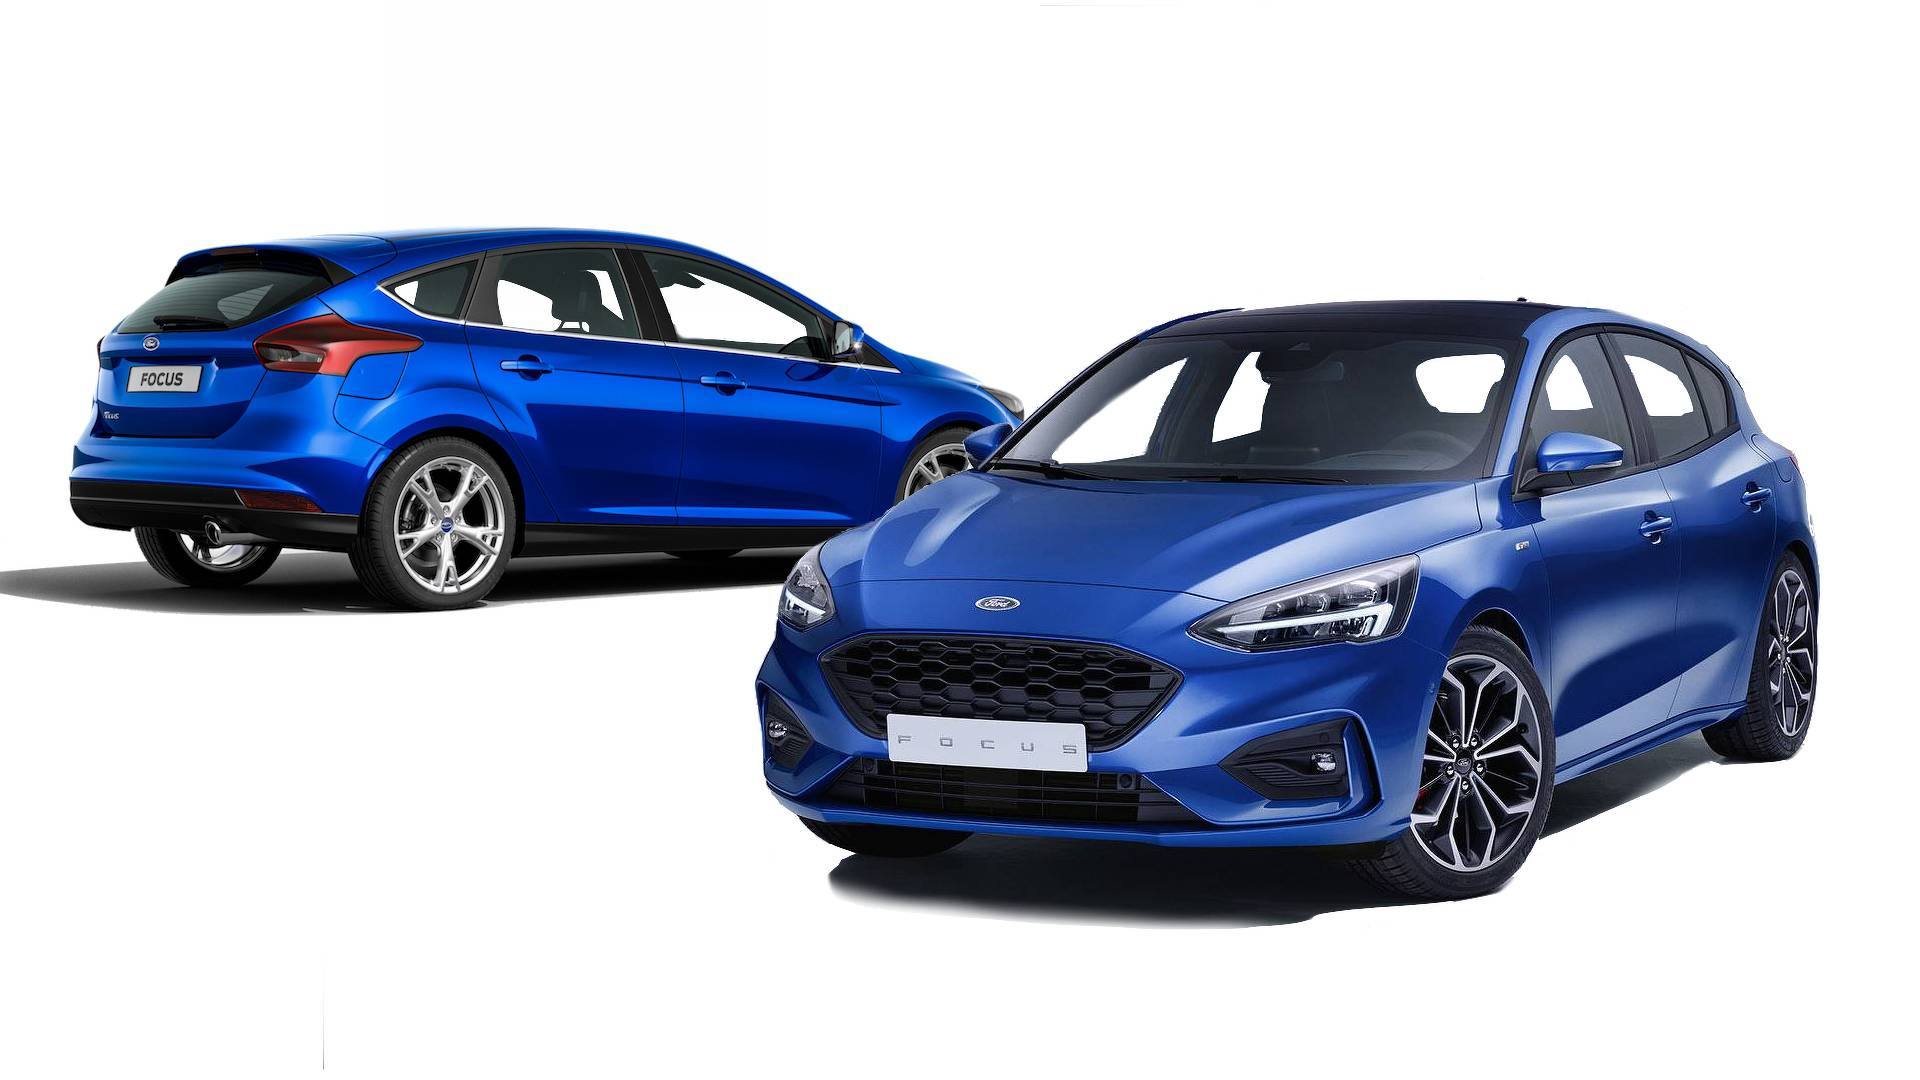 2019 Ford Focus See The Changes Side By Side